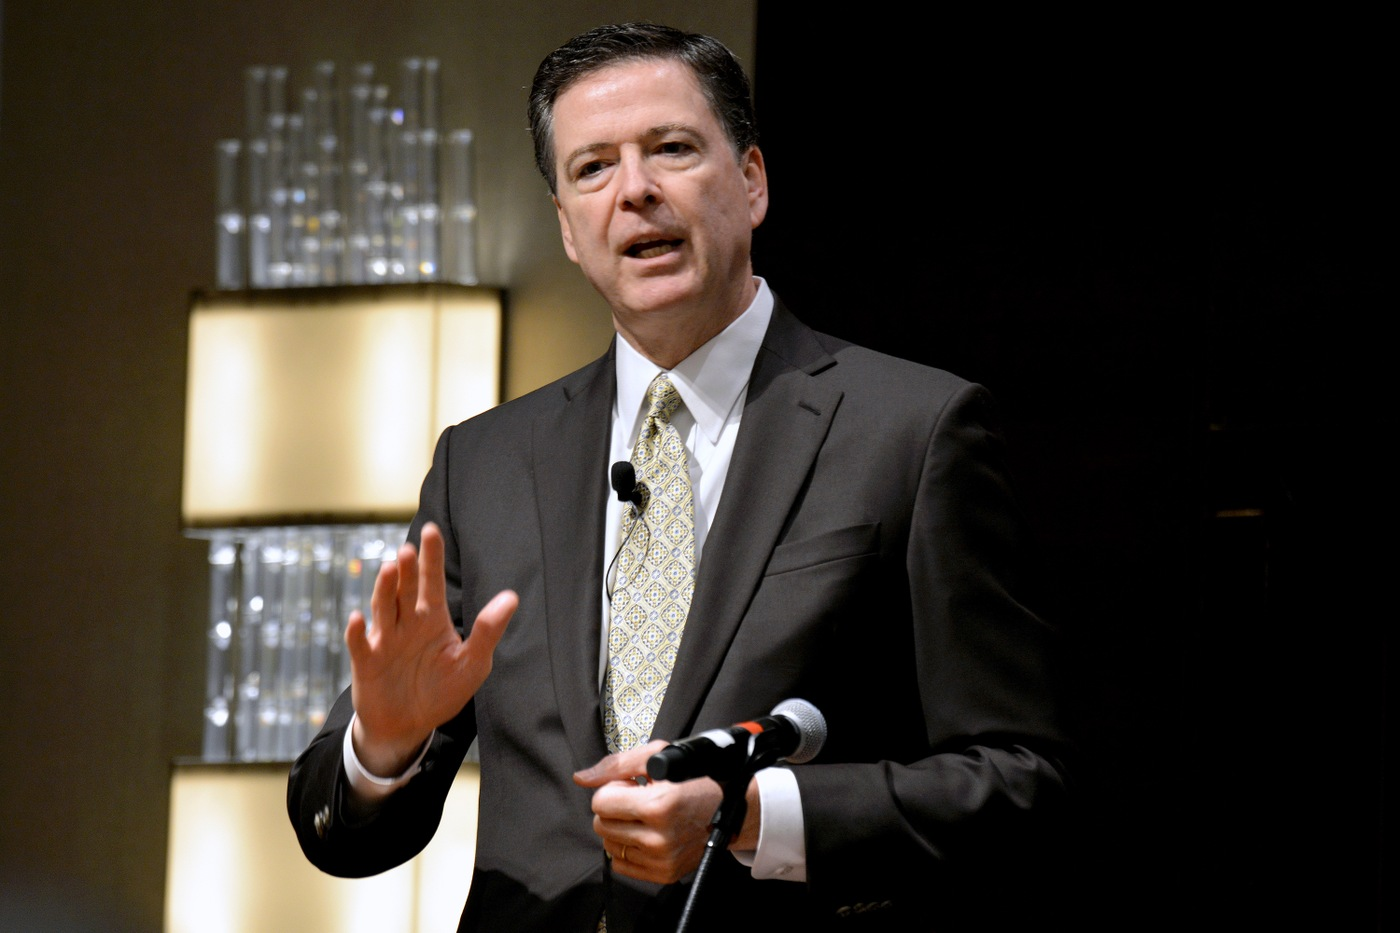 Director Comey Speaks at African American FBI Special Agents Symposium